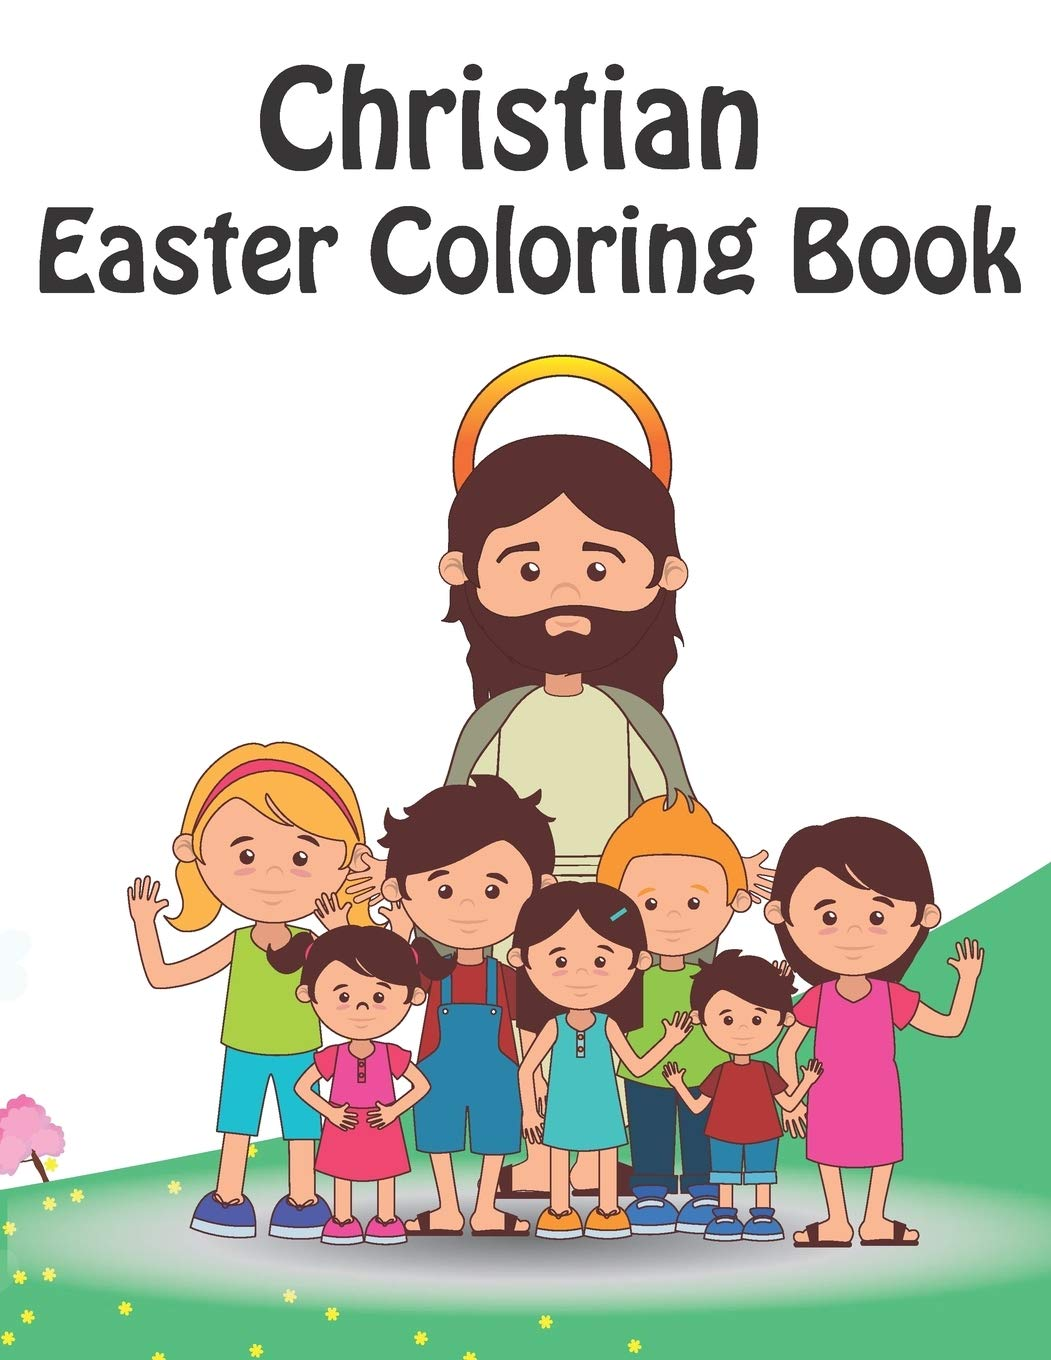 15 Easter Coloring Pages [Religious] Free Printables for Kids | 1360x1051